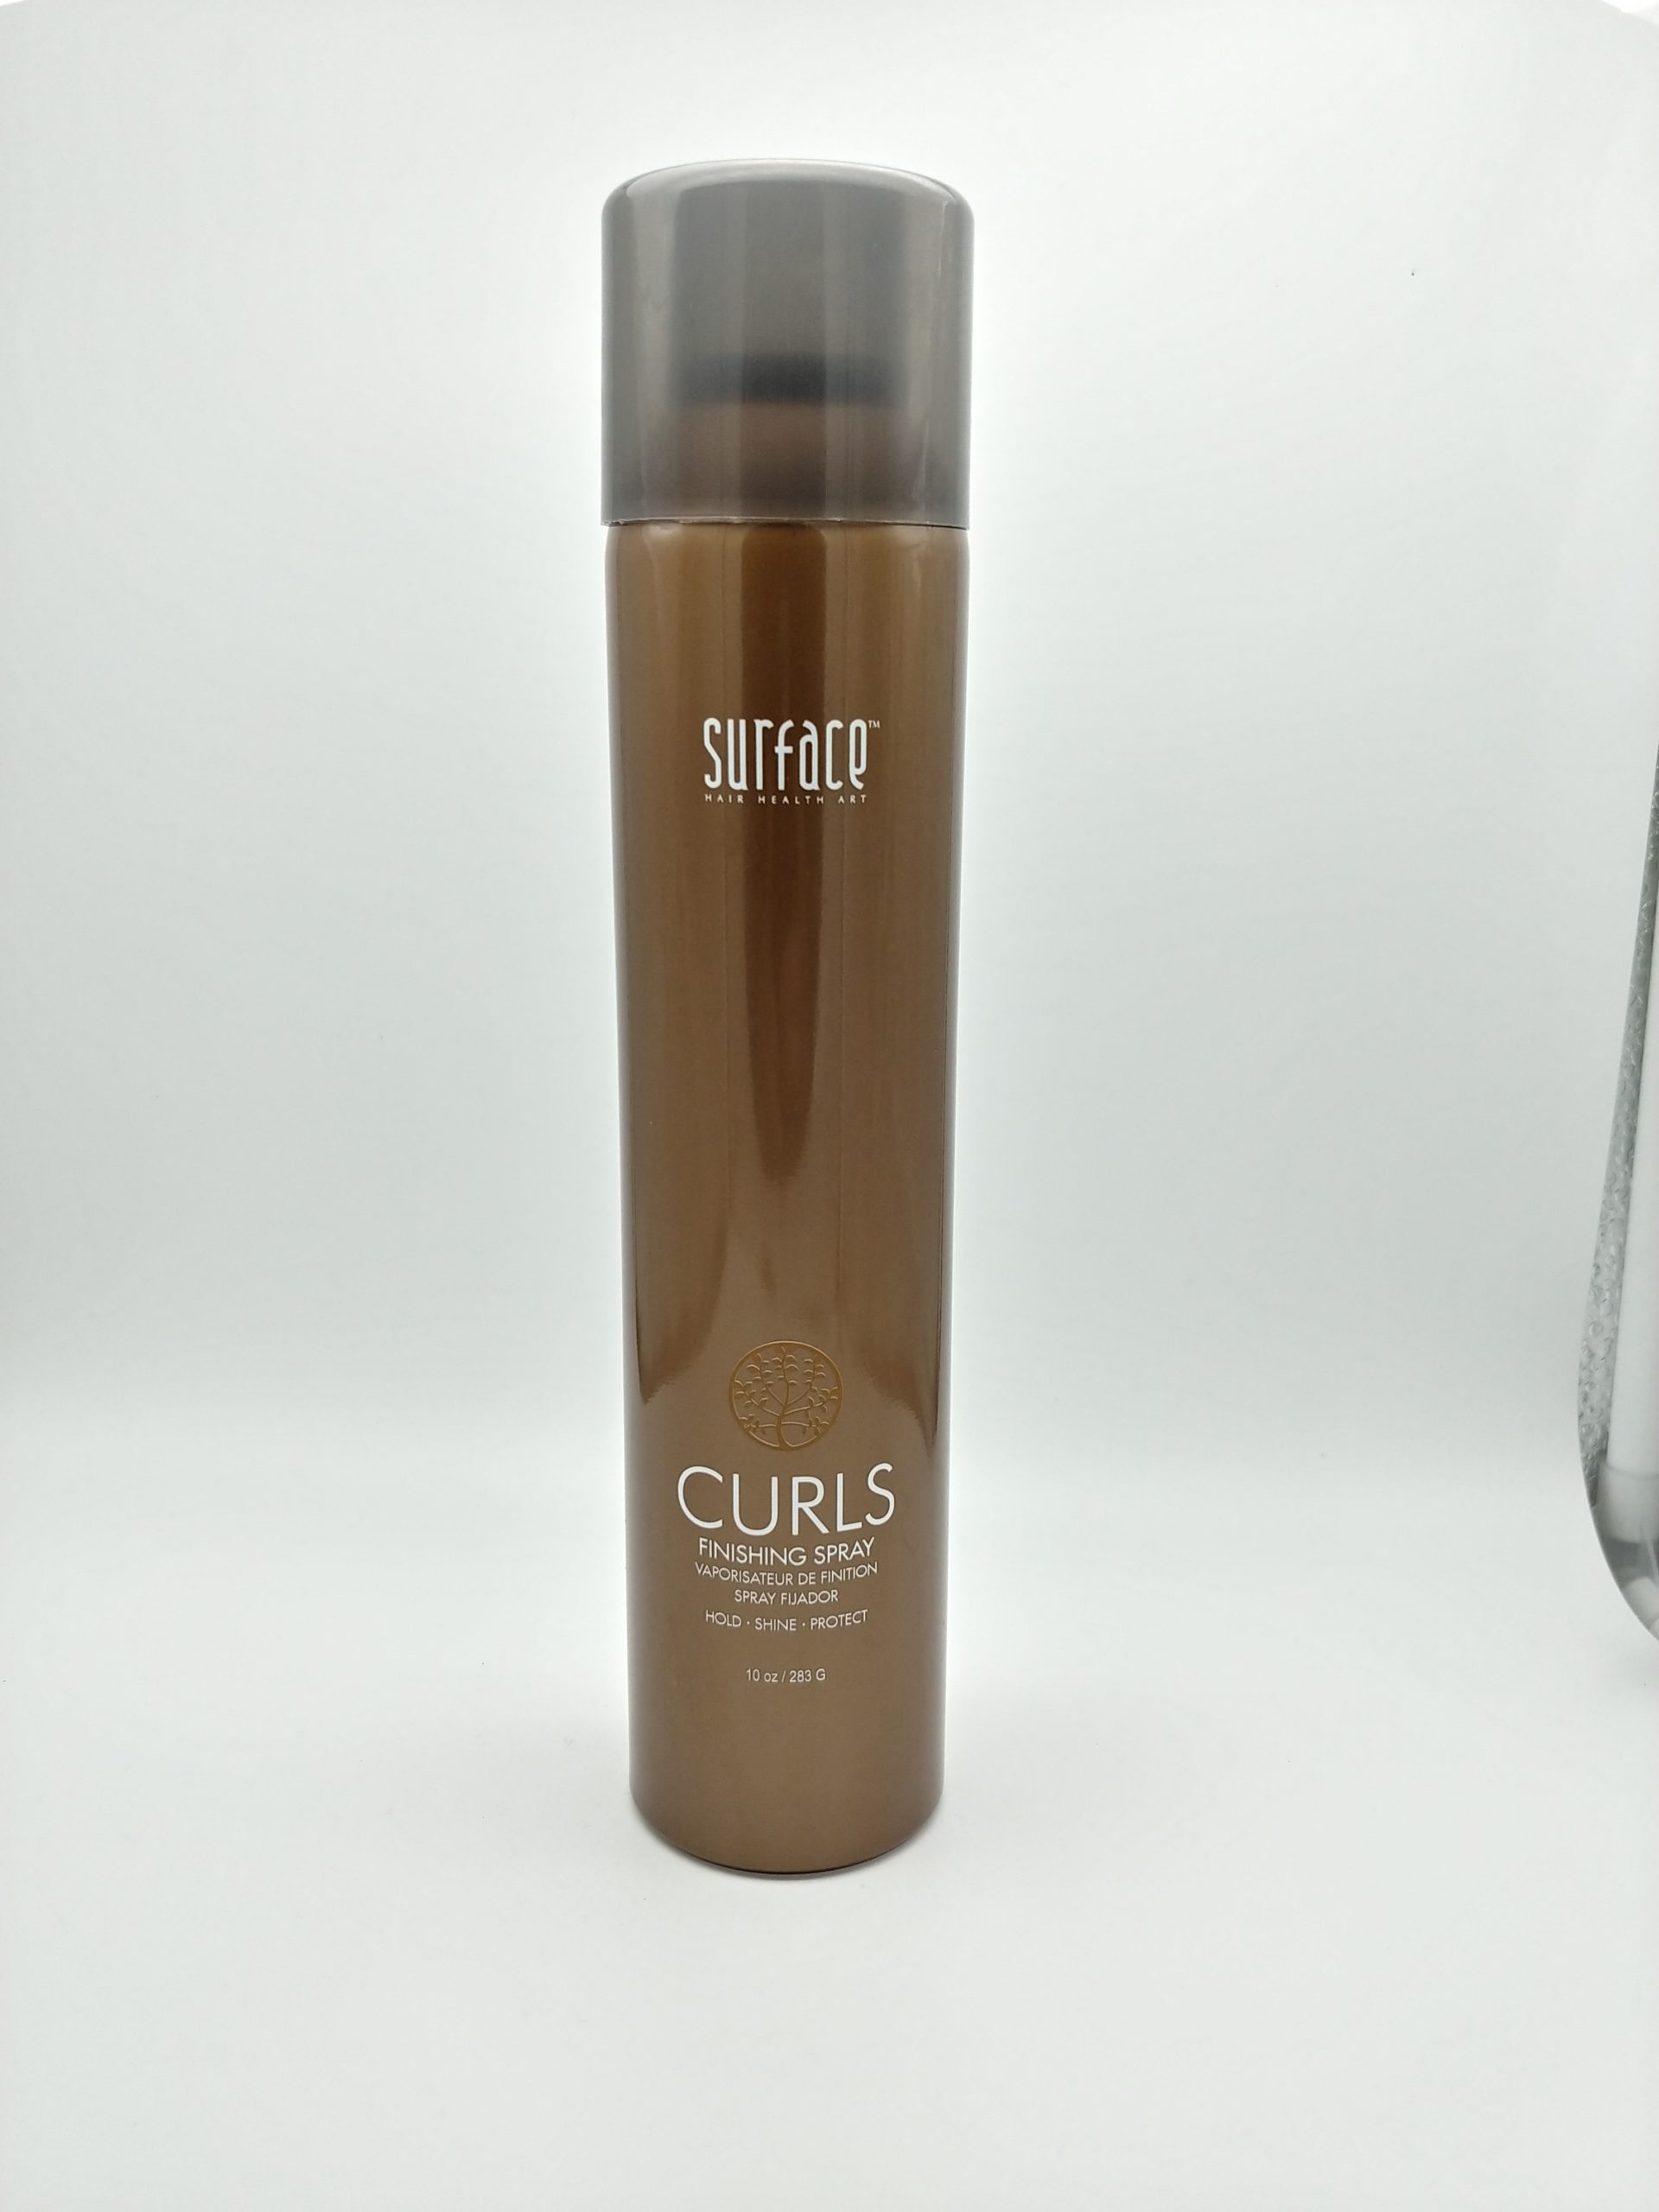 Surface Curls Finishing Spray